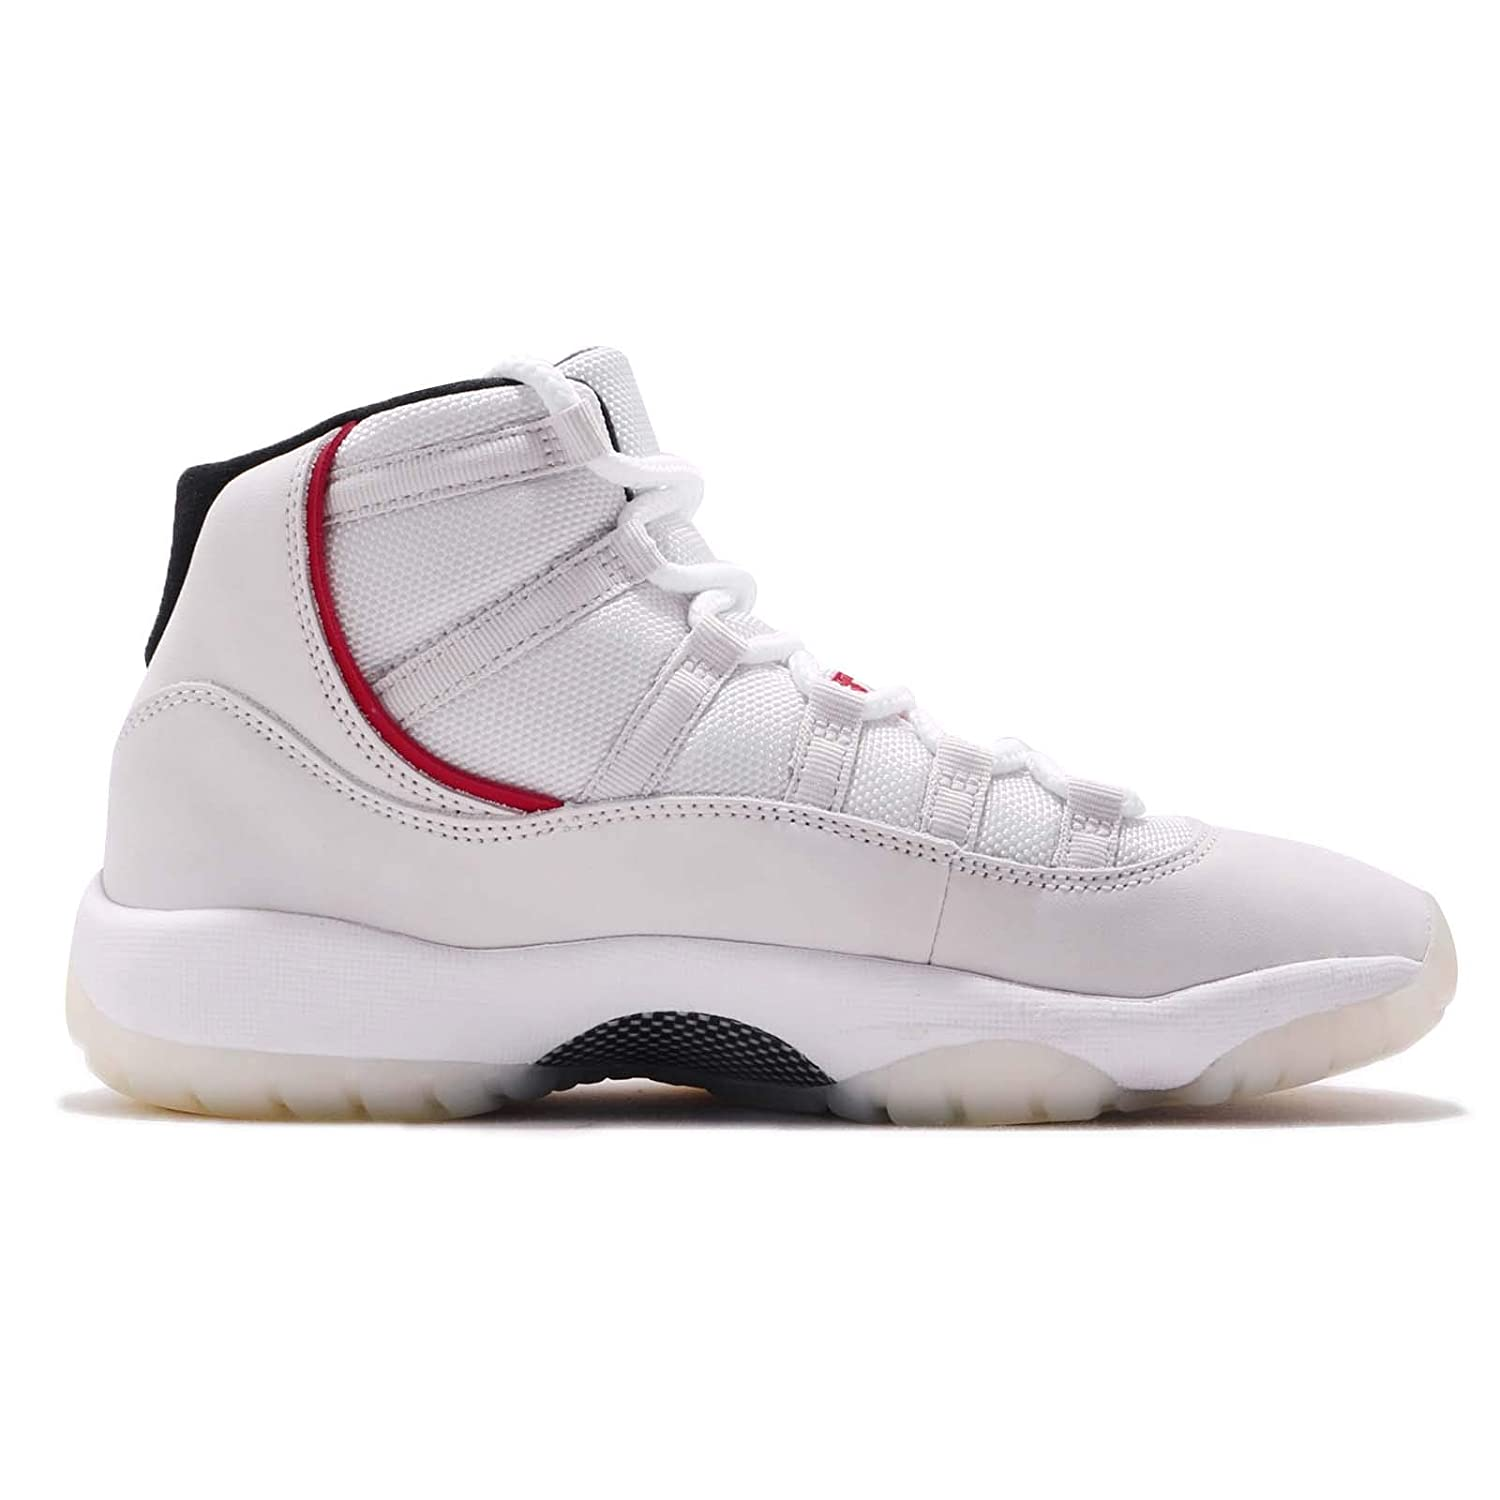 a64a7c38683 Amazon.com | NIKE Kids Jordan Air 11 Retro GS Basketball Shoes (6.5) |  Basketball